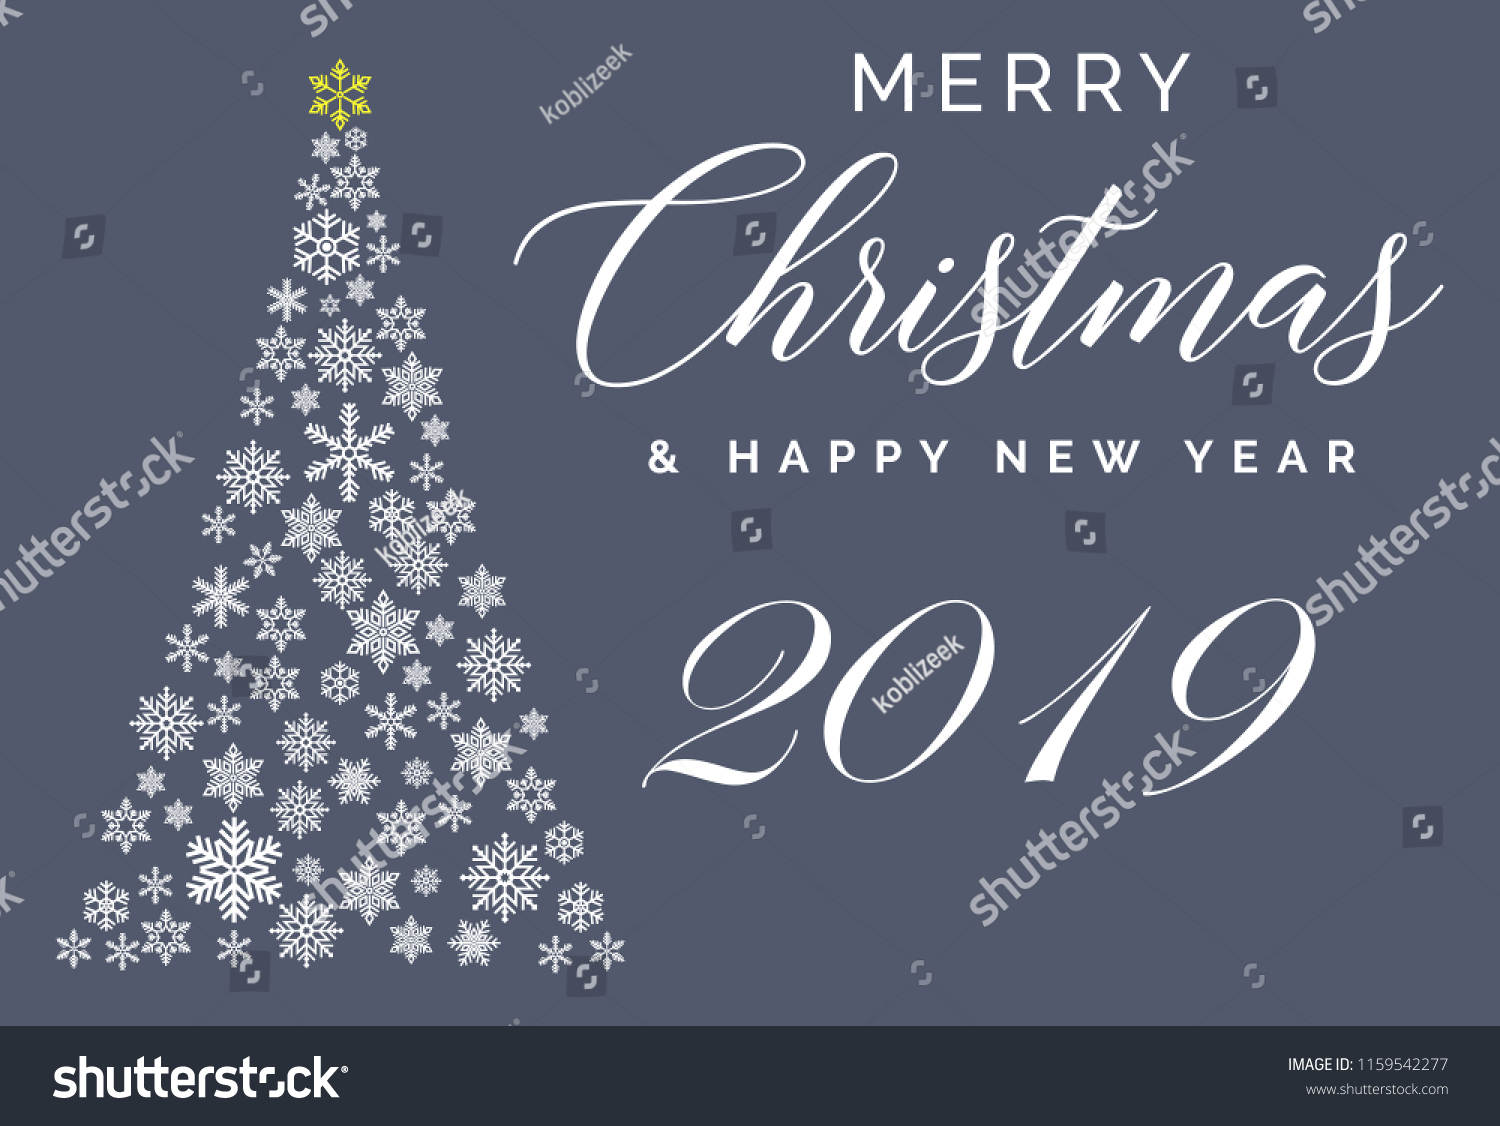 merry christmas happy new year 2019 stock vector royalty free 1159542277 https www shutterstock com image vector merry christmas happy new year 2019 1159542277